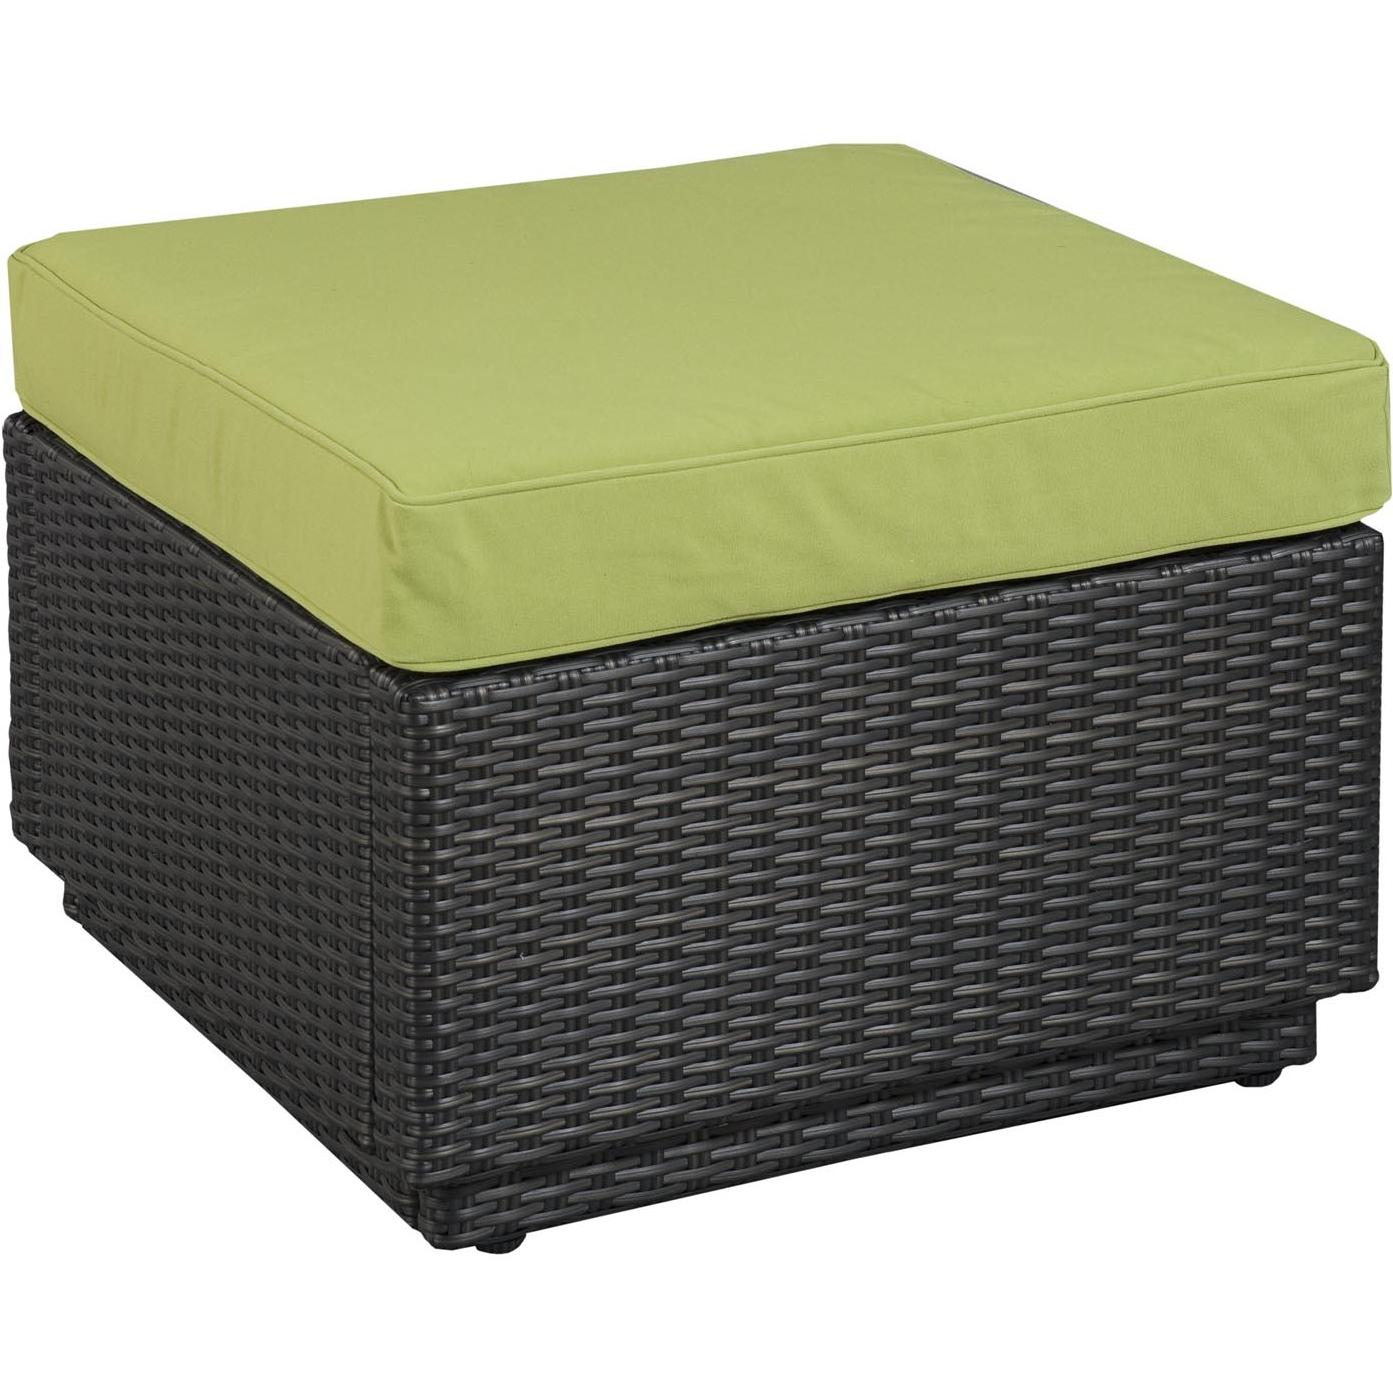 Furniture living room furniture wicker green wicker for Furniture 888 formerly green apple